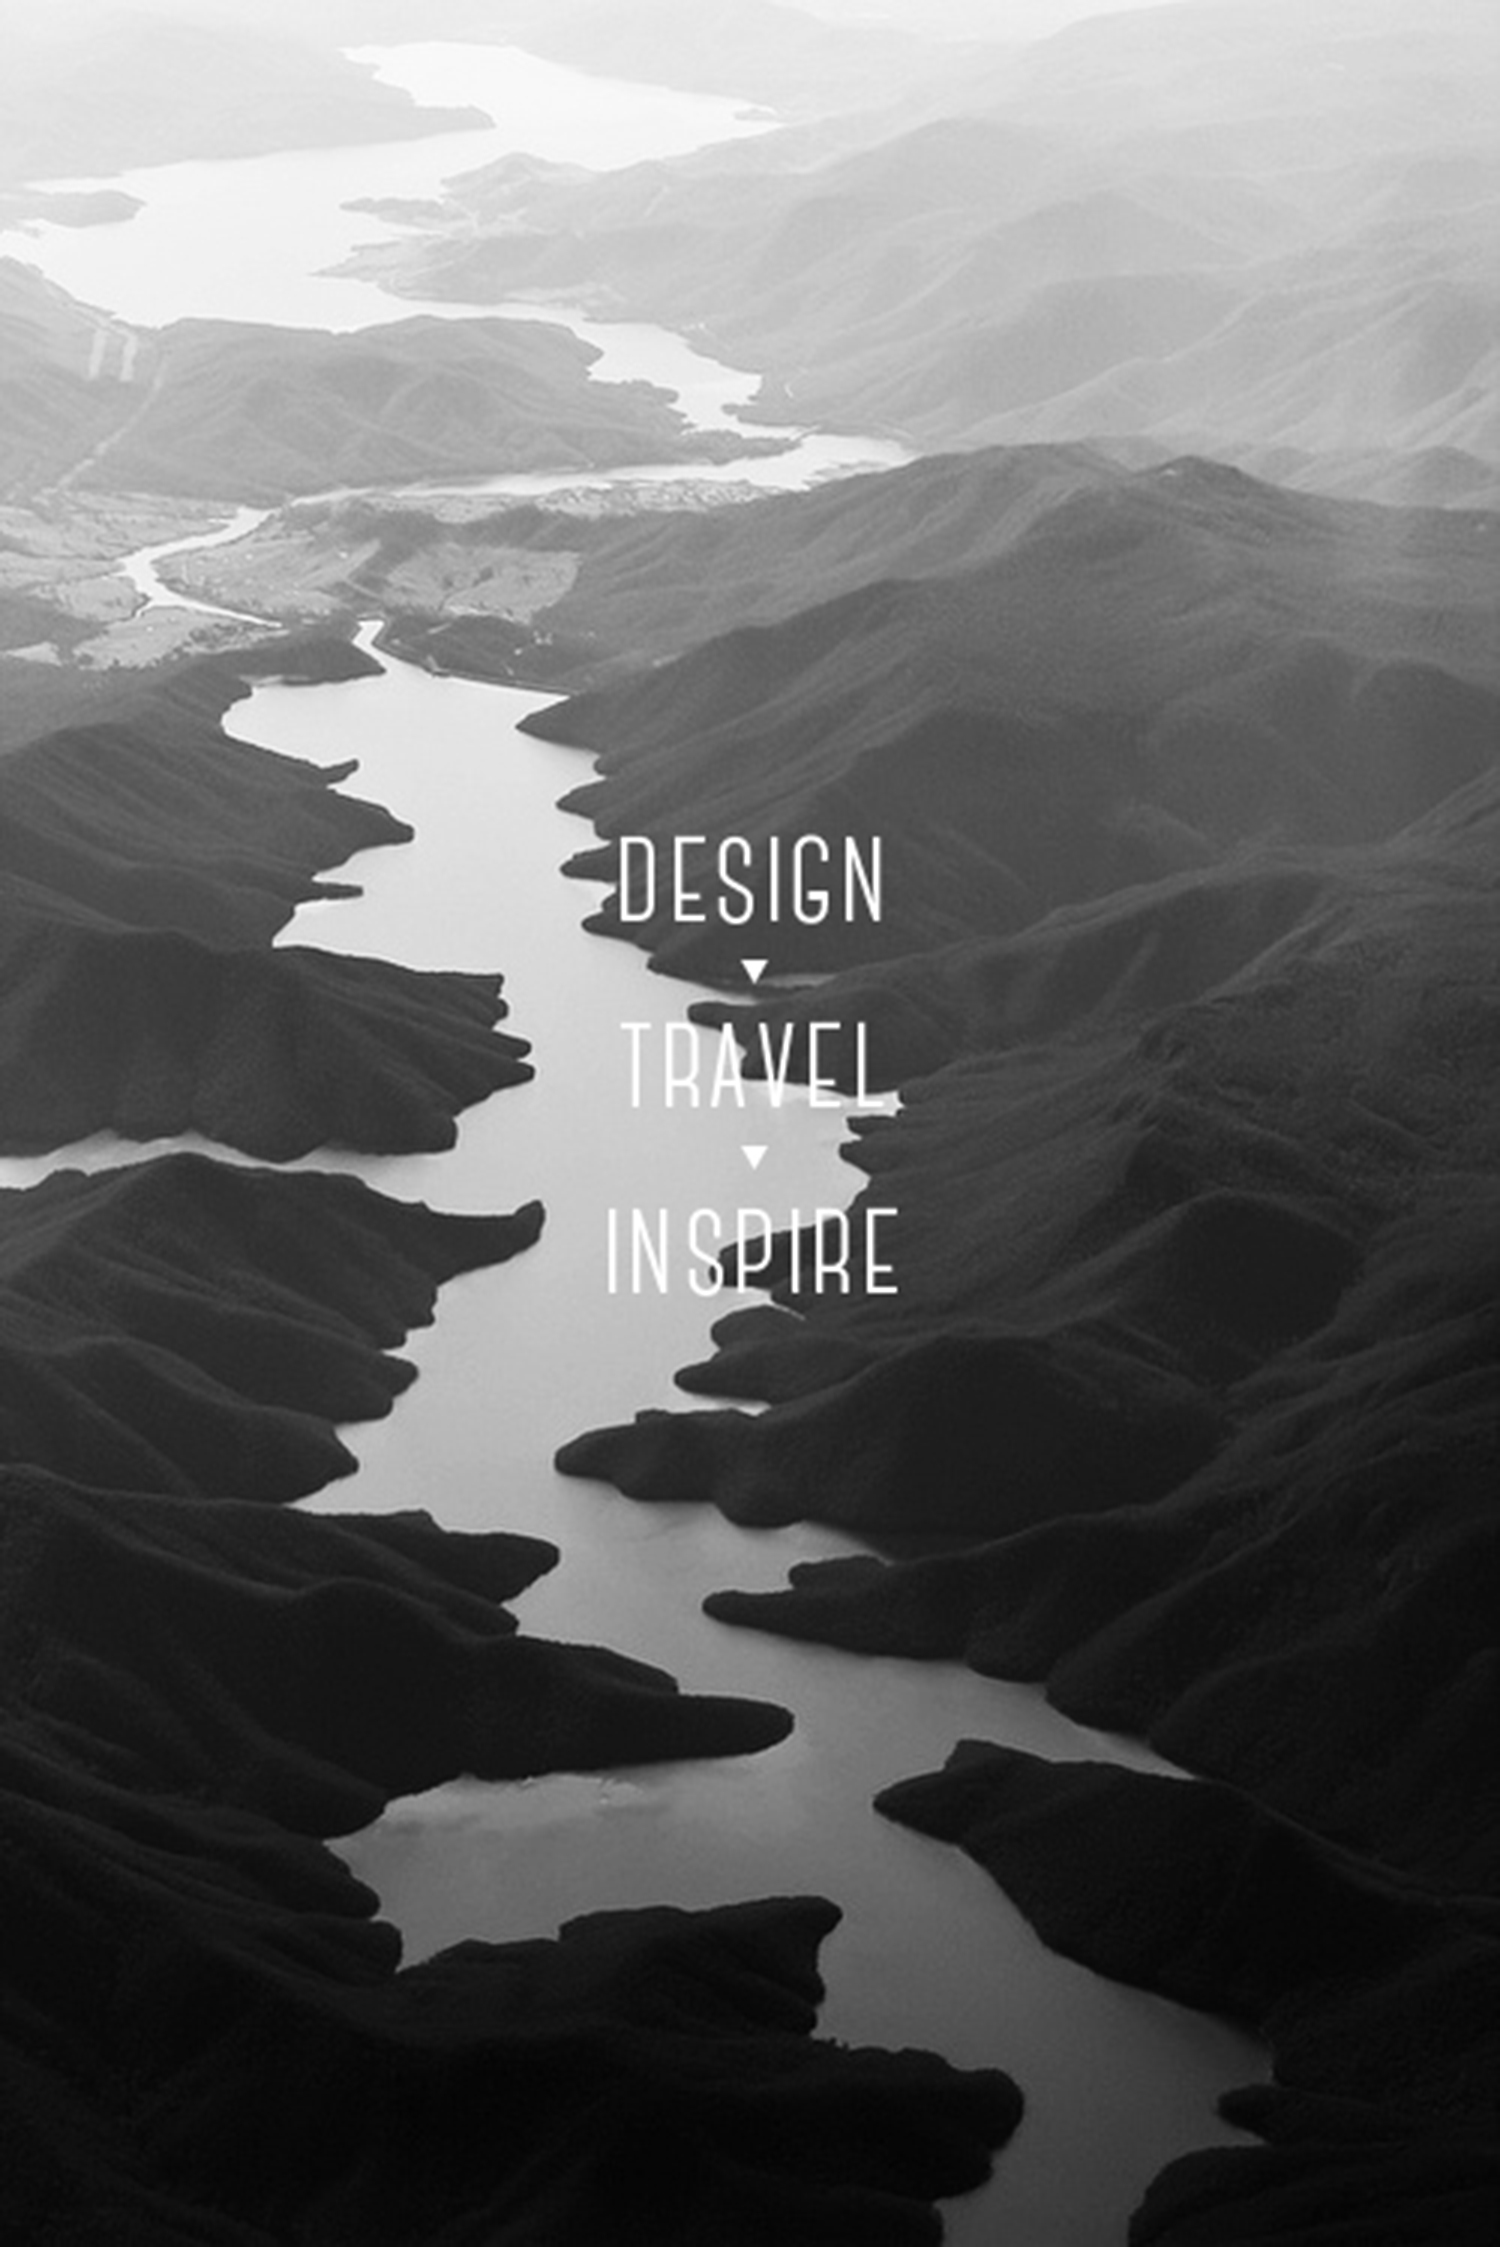 Design-travel-inspire